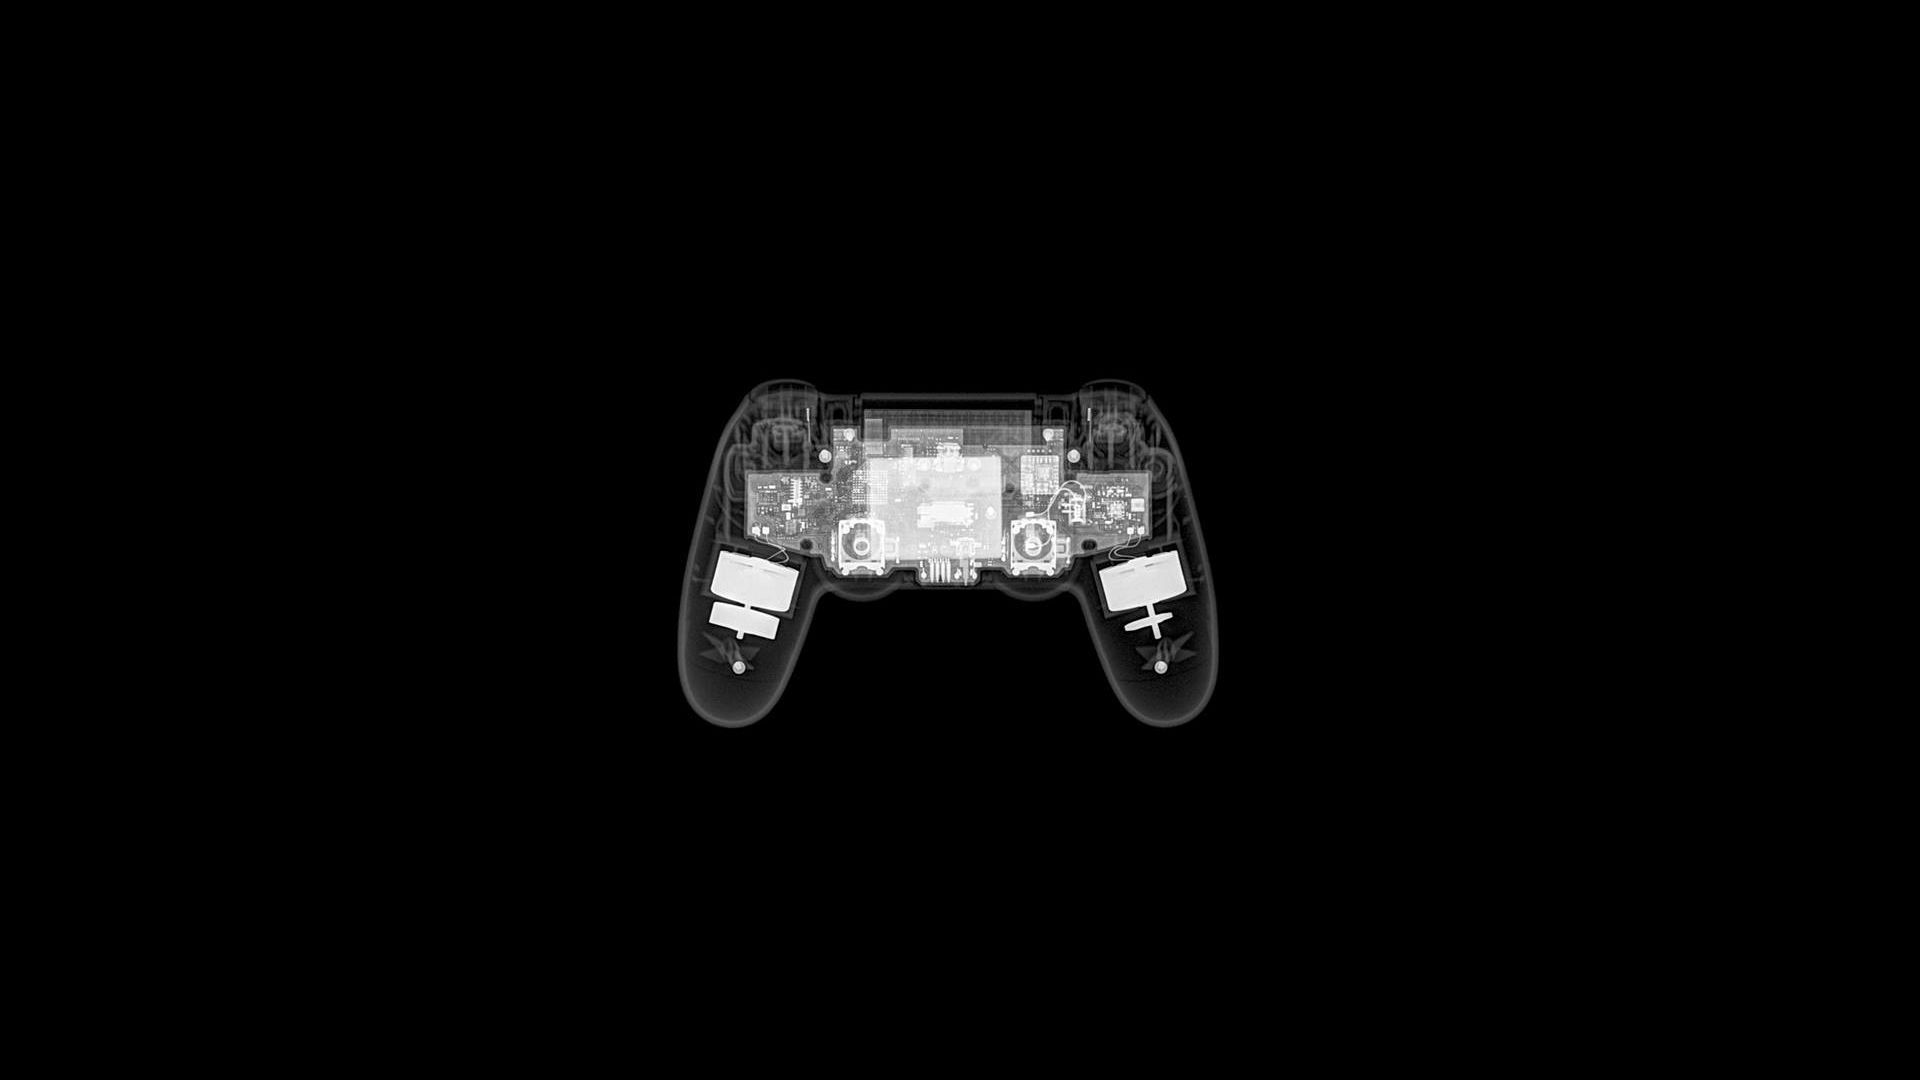 1920x1080 Controller Wallpapers On Kubipet Com Game Controller Gaming Wallpapers Hd Minimalist Iphone